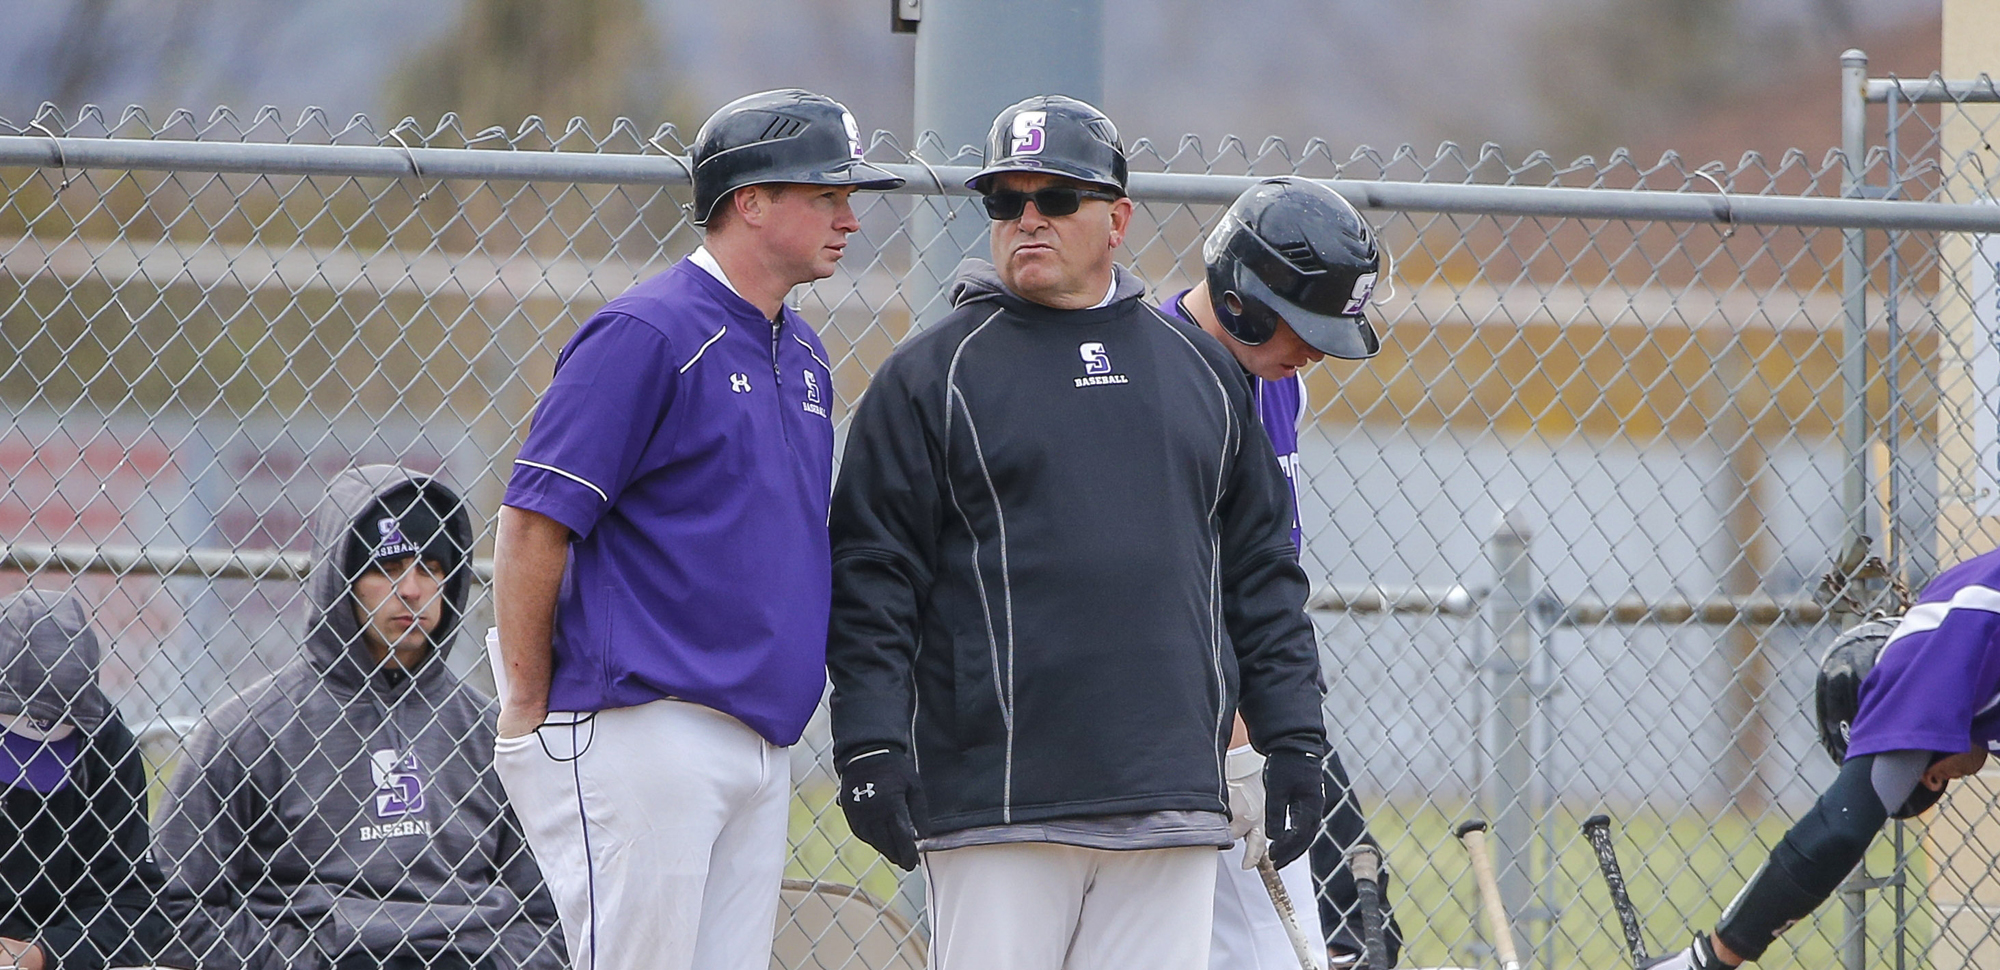 Head coach Mike Bartoletti, right, and assistant coach Mike Guy piloted the Royals to a 19-19 record this past spring.